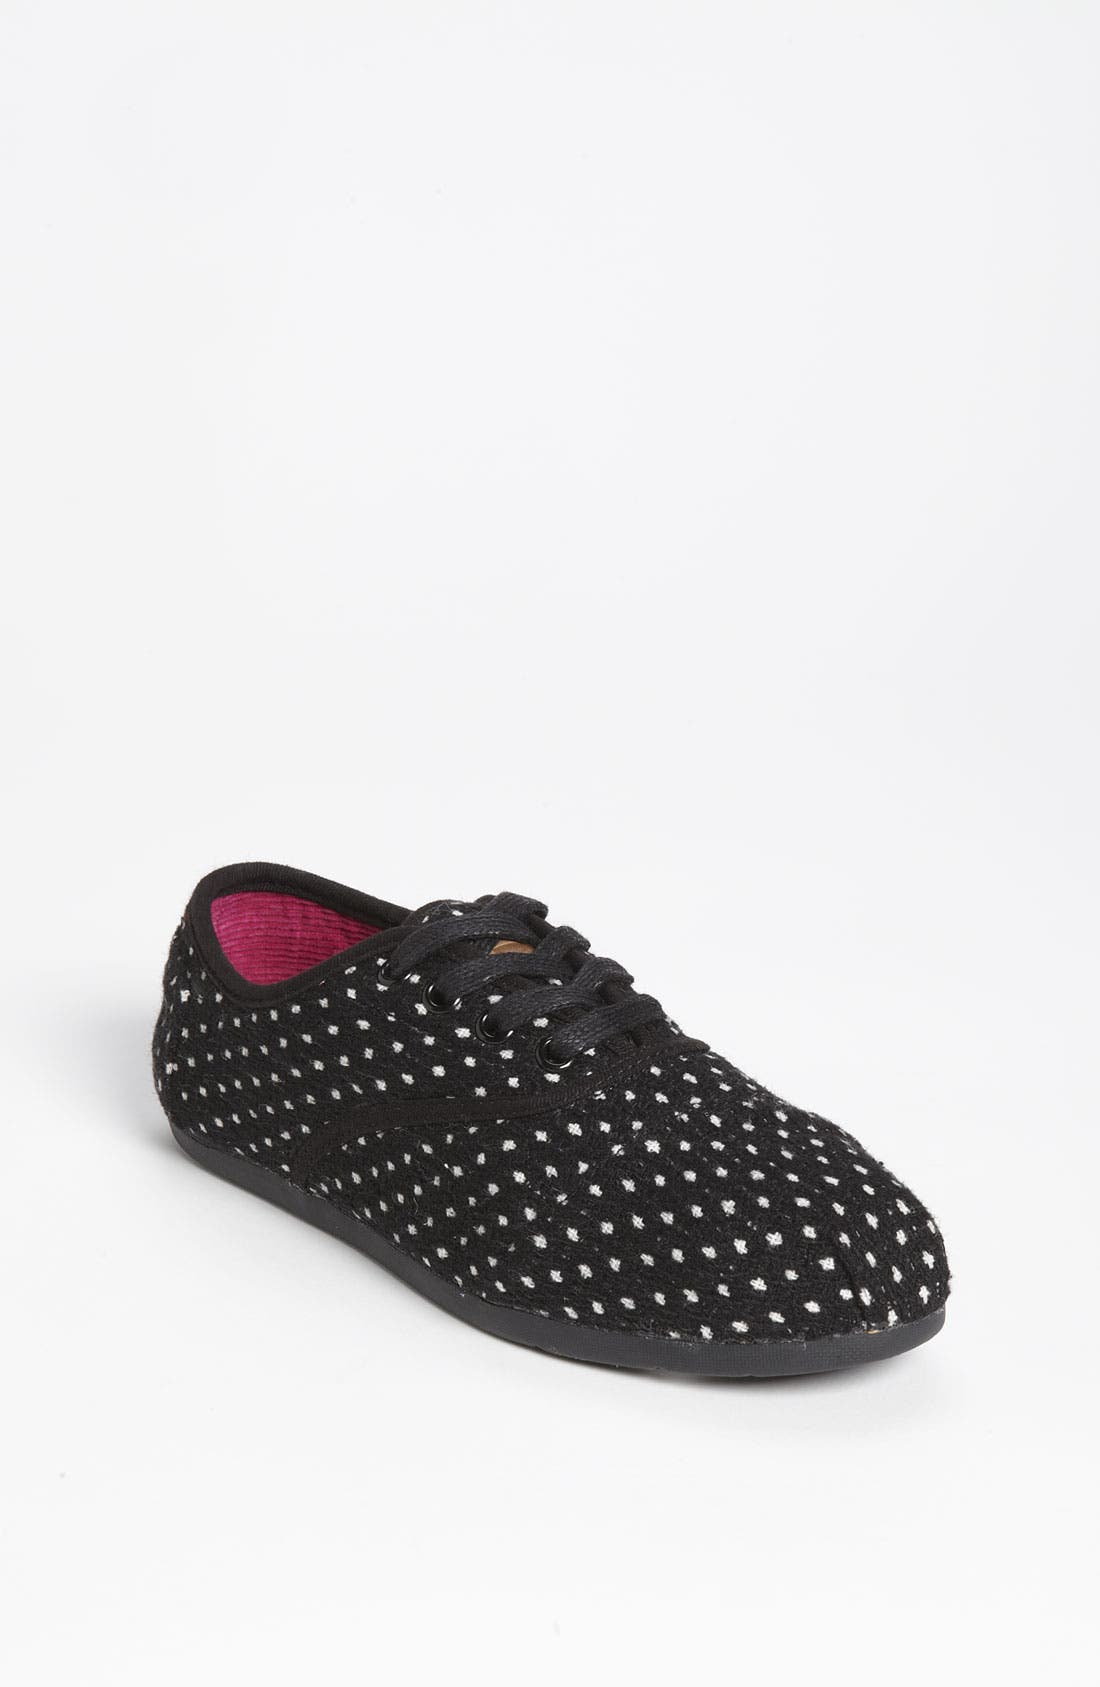 Alternate Image 1 Selected - TOMS 'Cordones - Dots' Slip-On (Women)